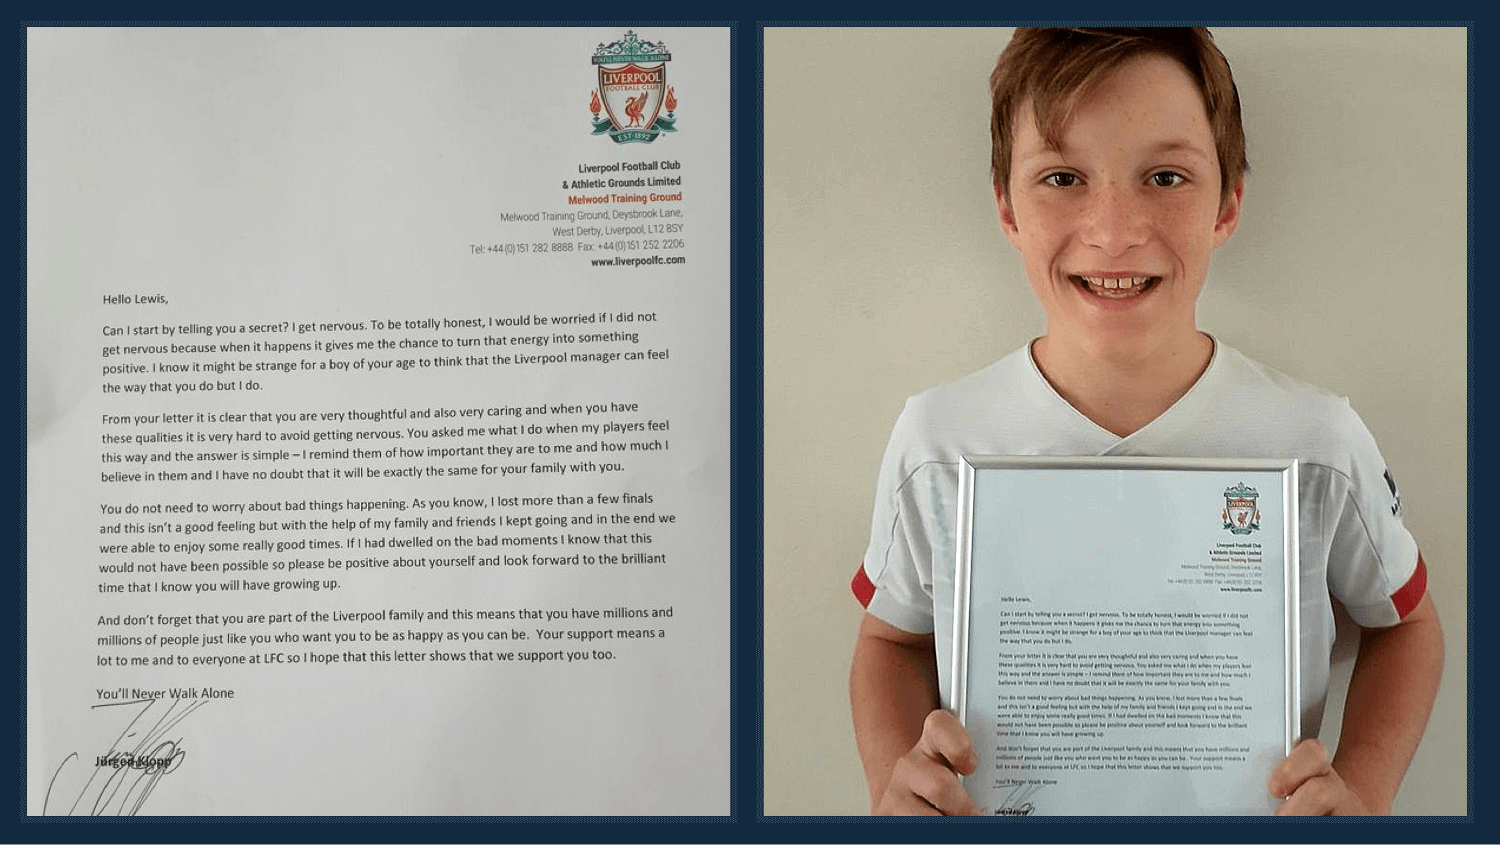 Jürgen Klopp letter to schoolboy with anxiety